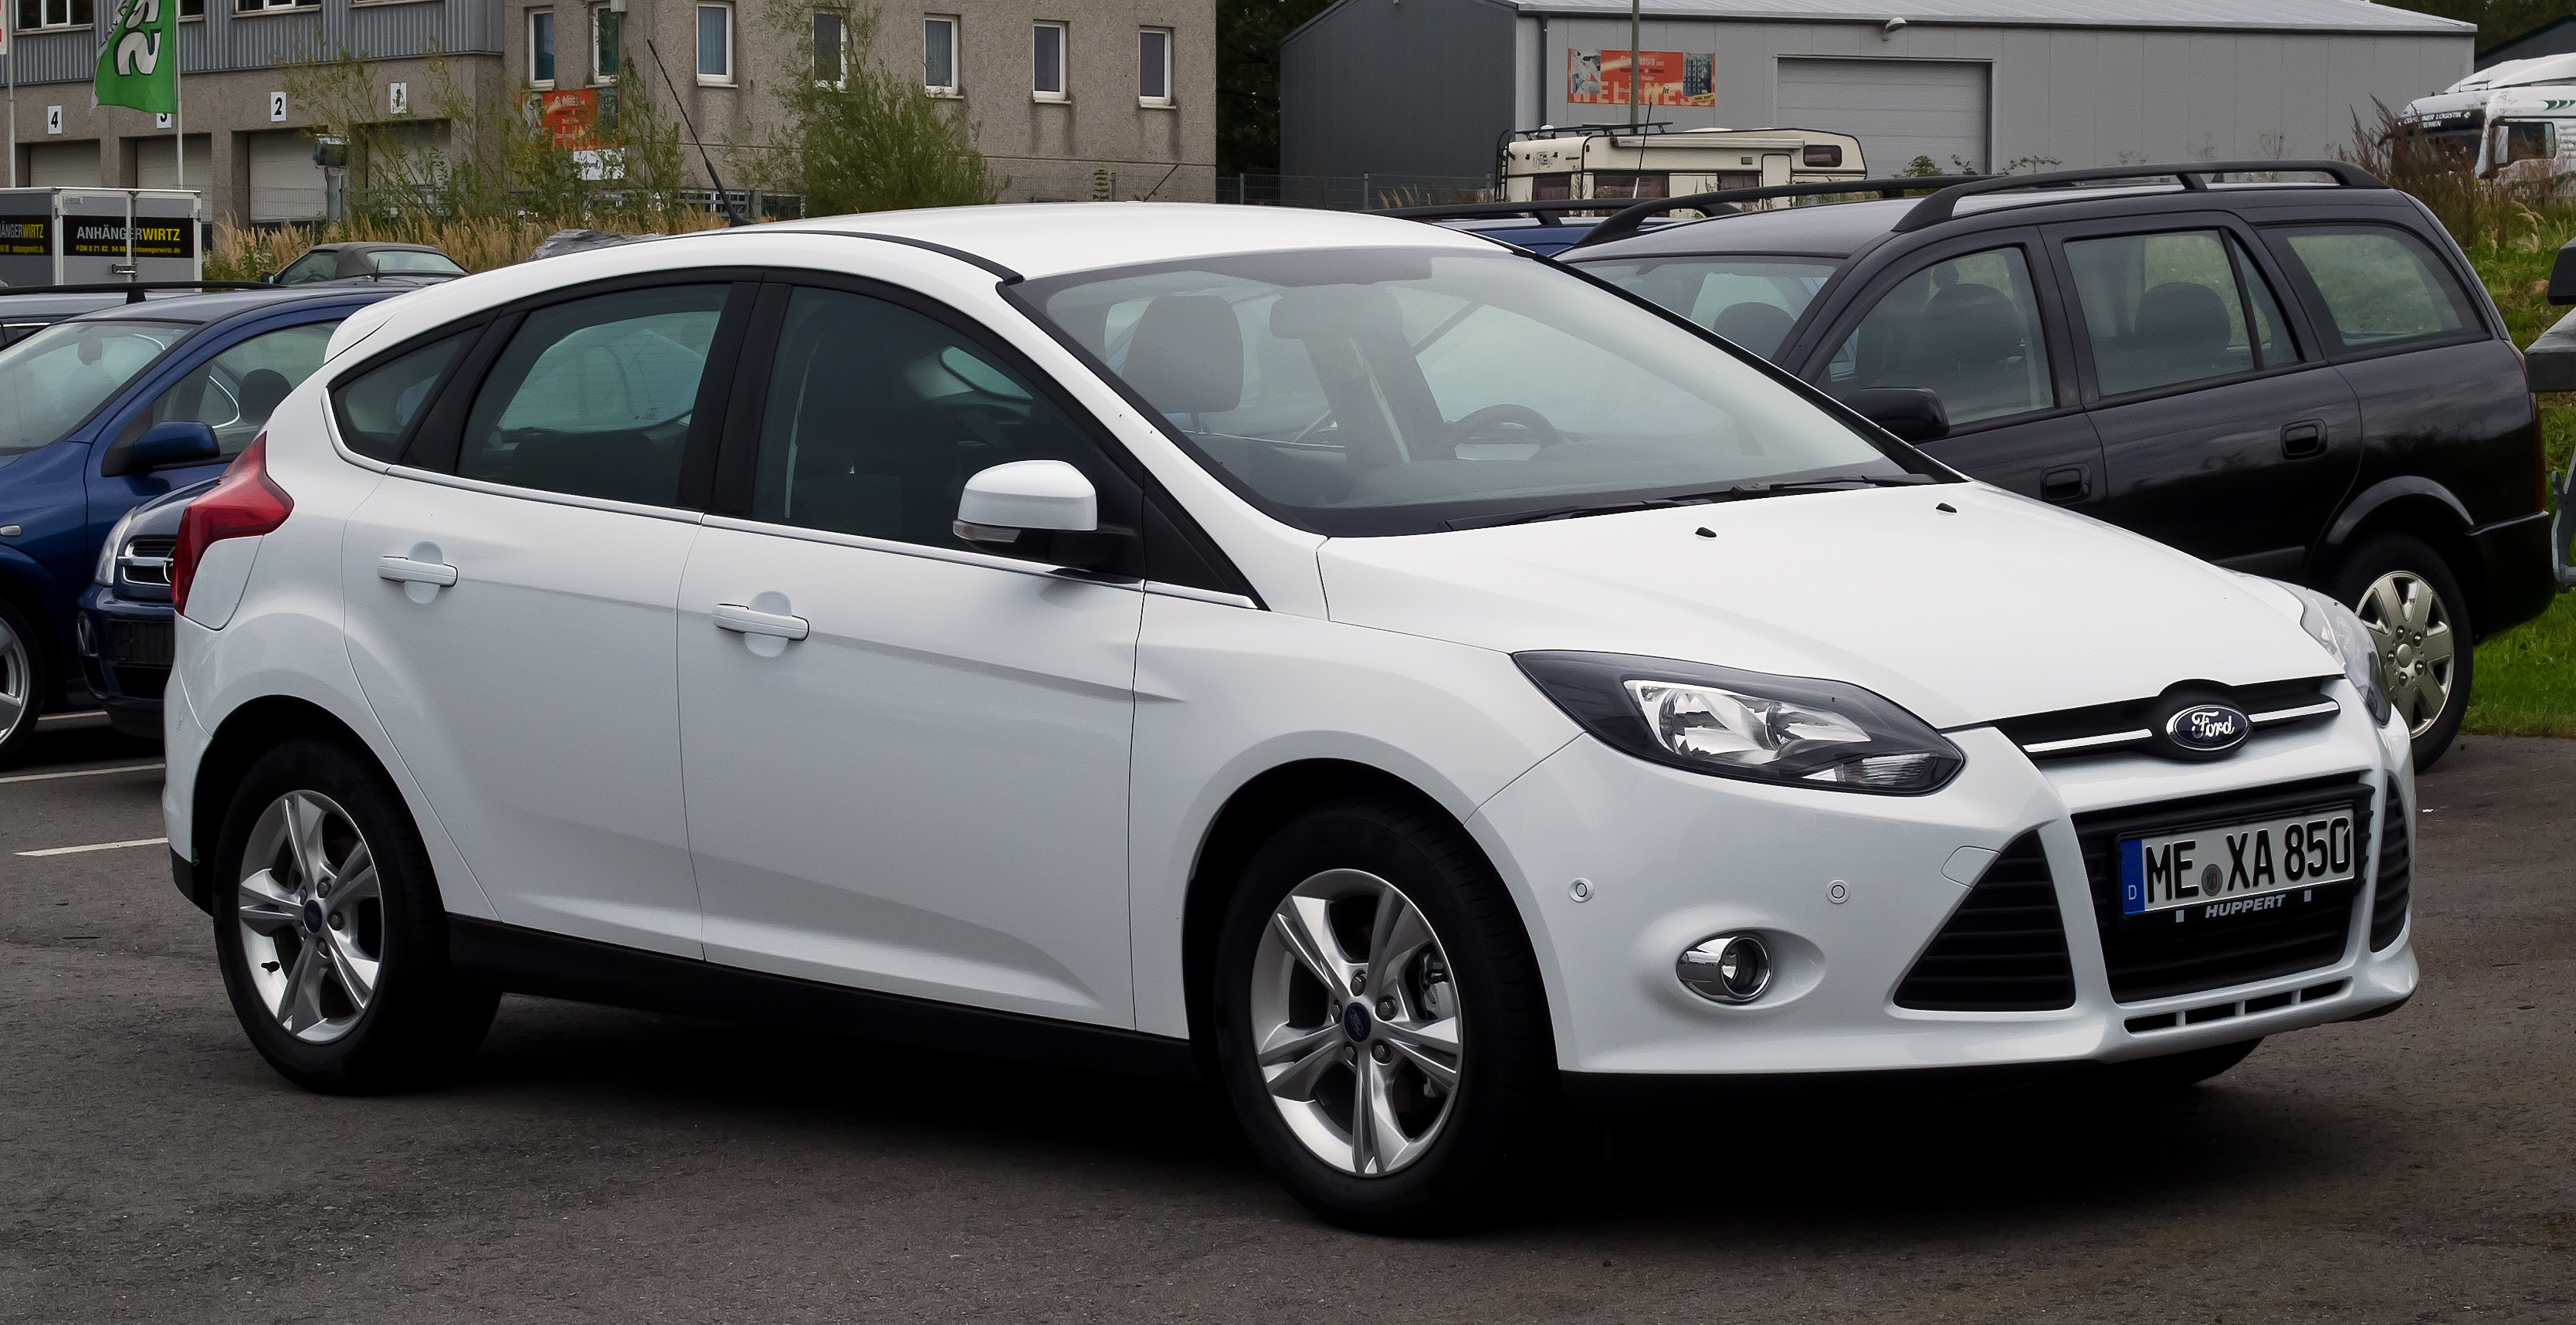 ford focus hatchback ii 2009 pictures #8